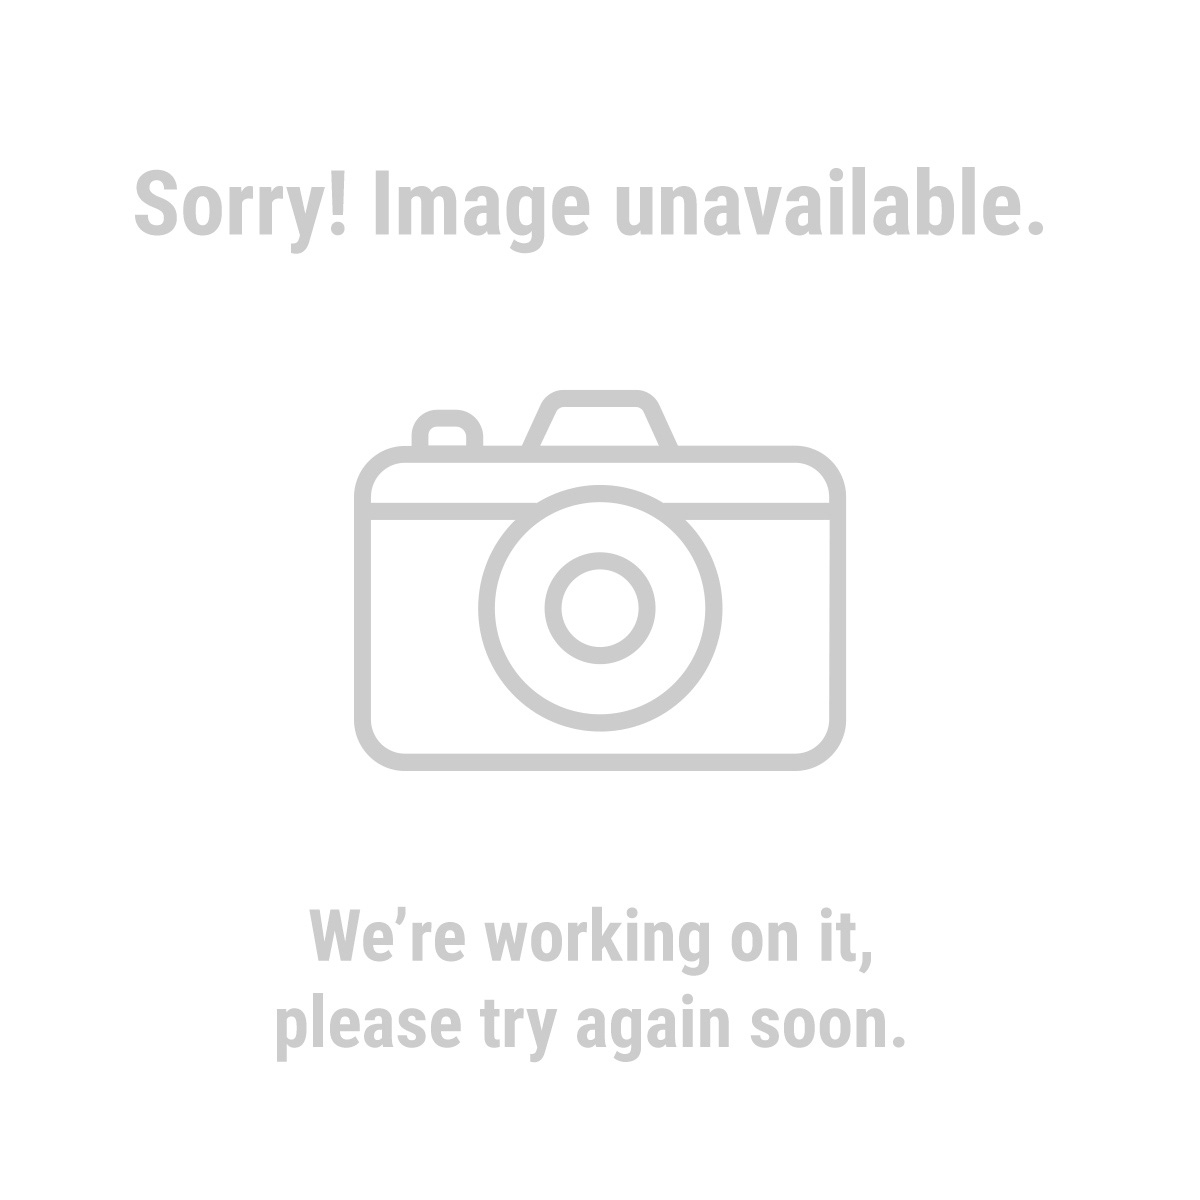 Haul-Master 97568 600 lb. Capacity Bigfoot Hand Truck